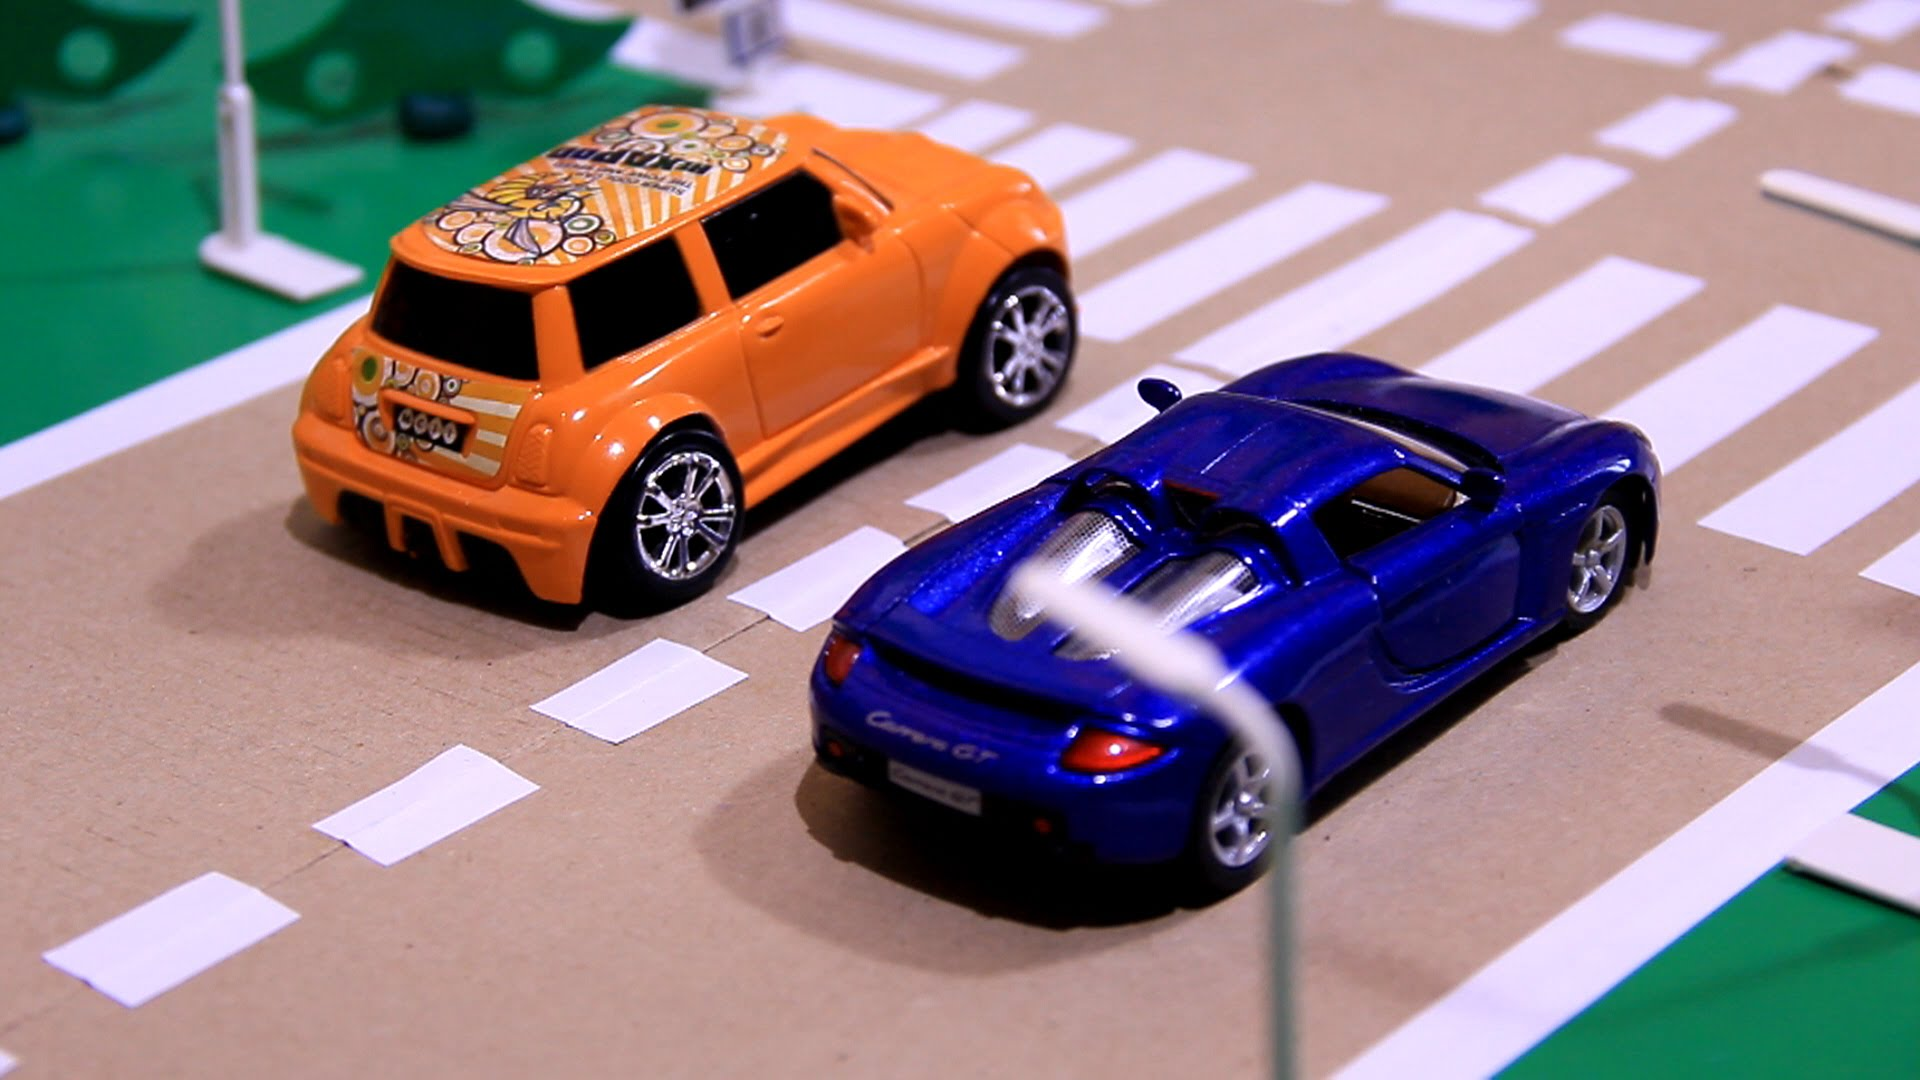 Cars Race & Crashes with Toy Racing Cars for Kids - YouTube